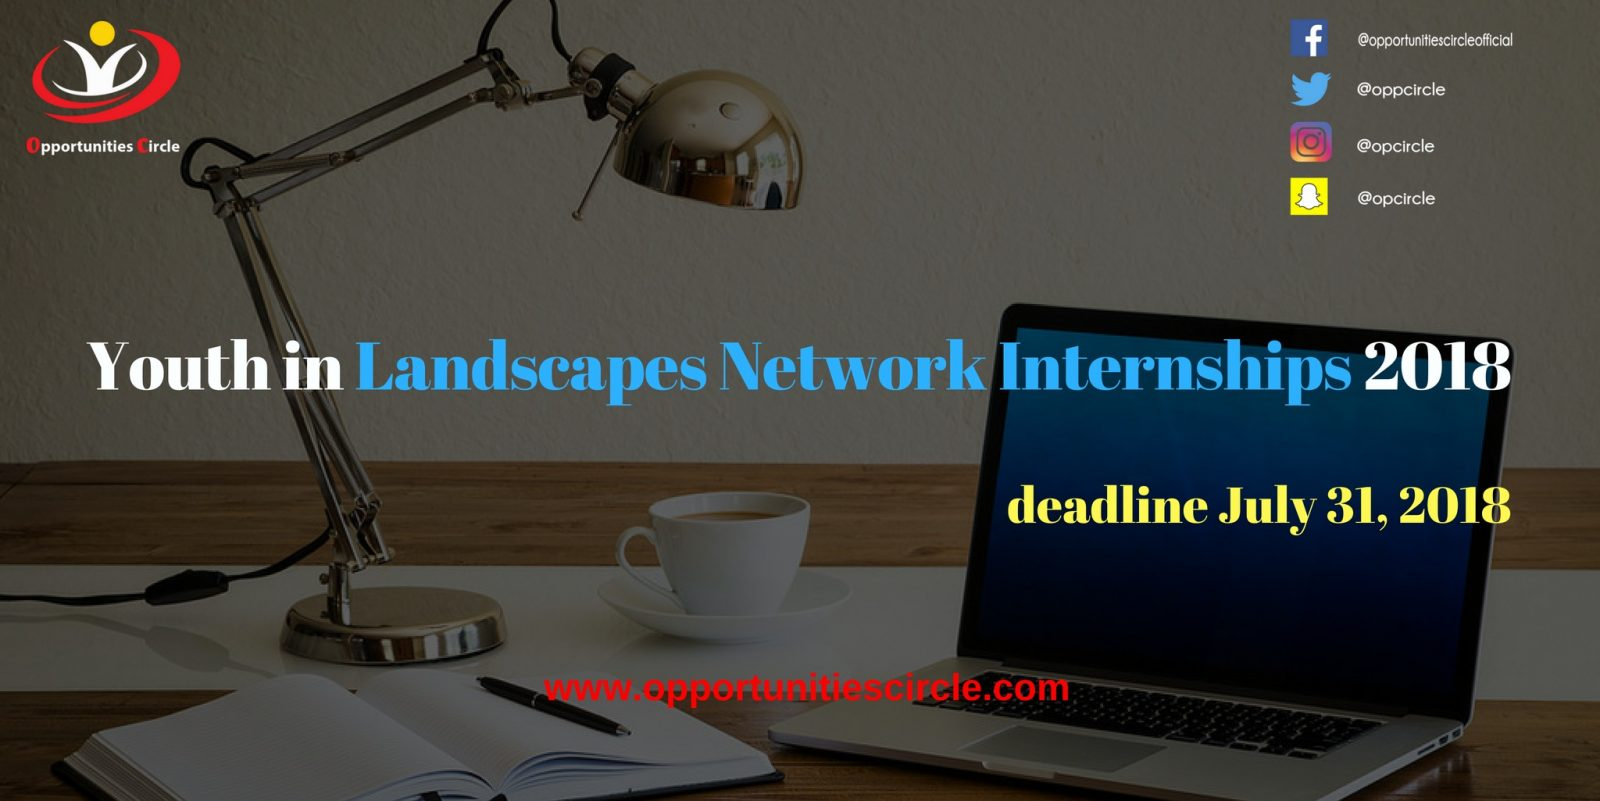 Youth in Landscapes Network Internships 2018 - Youth in Landscapes Network Internships 2018